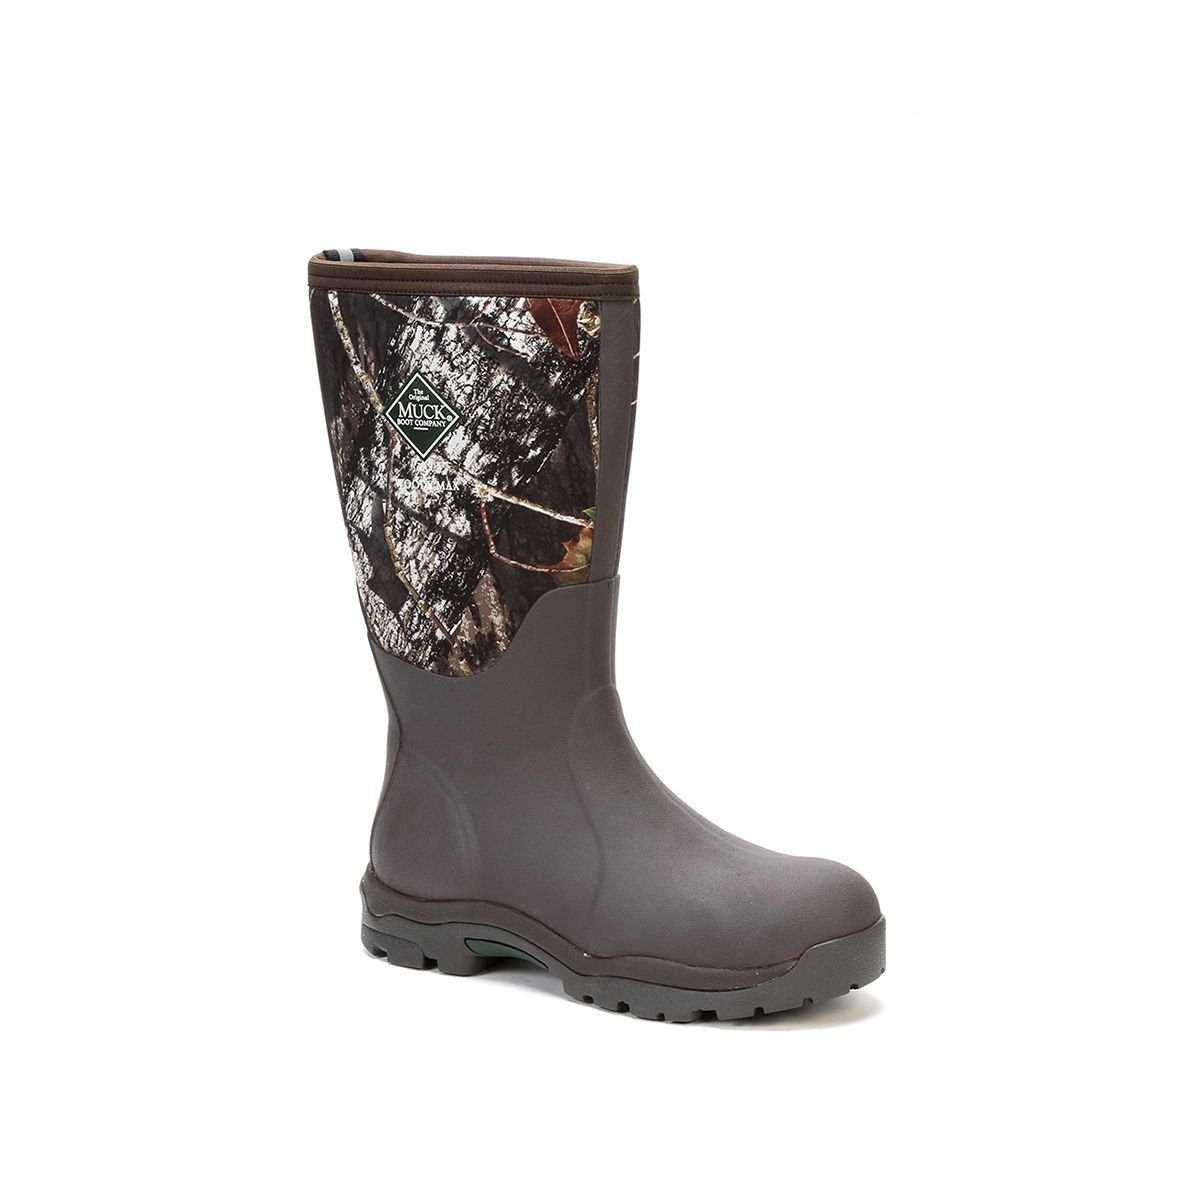 Muck Boots Women's Woody Max Boot, Mossy Oak Break-Up, 10 B(M) US Womens by Muck Boot